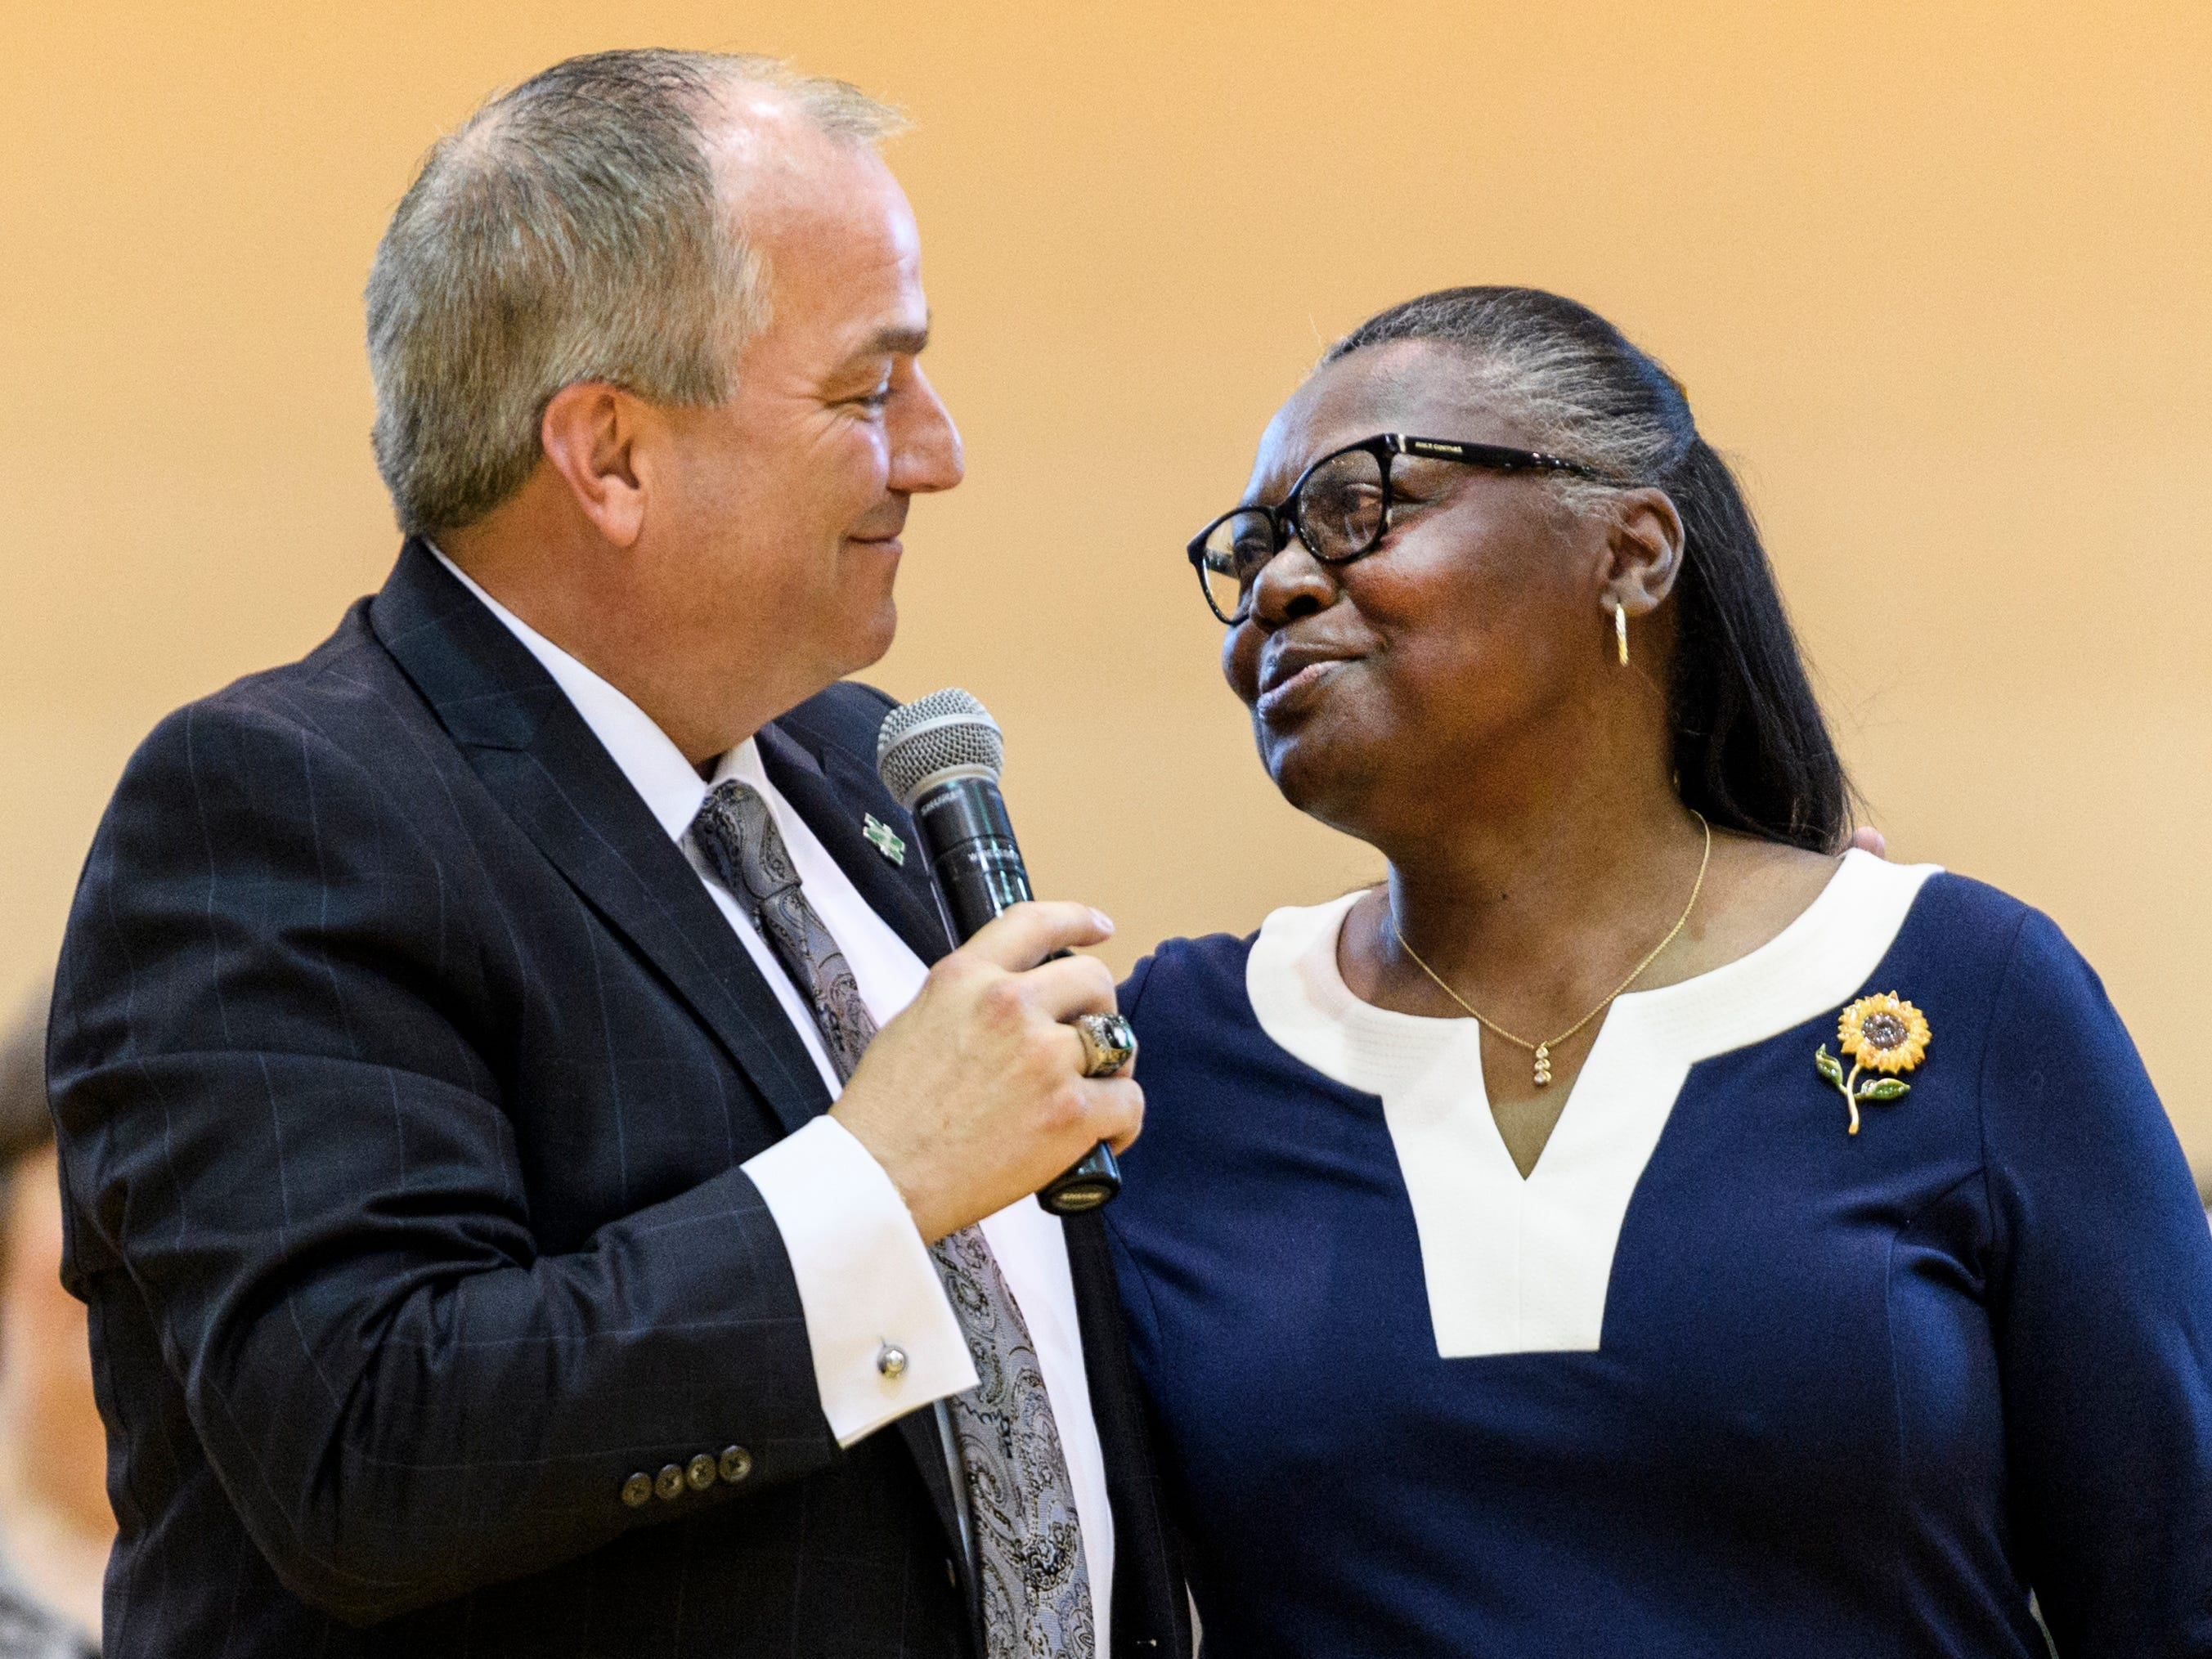 John D. Skinner, left, takes a moment to thank Shelia Huff, right, who helped him at the beginning of his education career during a school assembly at North High School in Evansville, Ind., Wednesday, April 10, 2019. Skinner was surprised with the 2019 Building Principal of the Year award after helping announce the high school teacher of the year award.